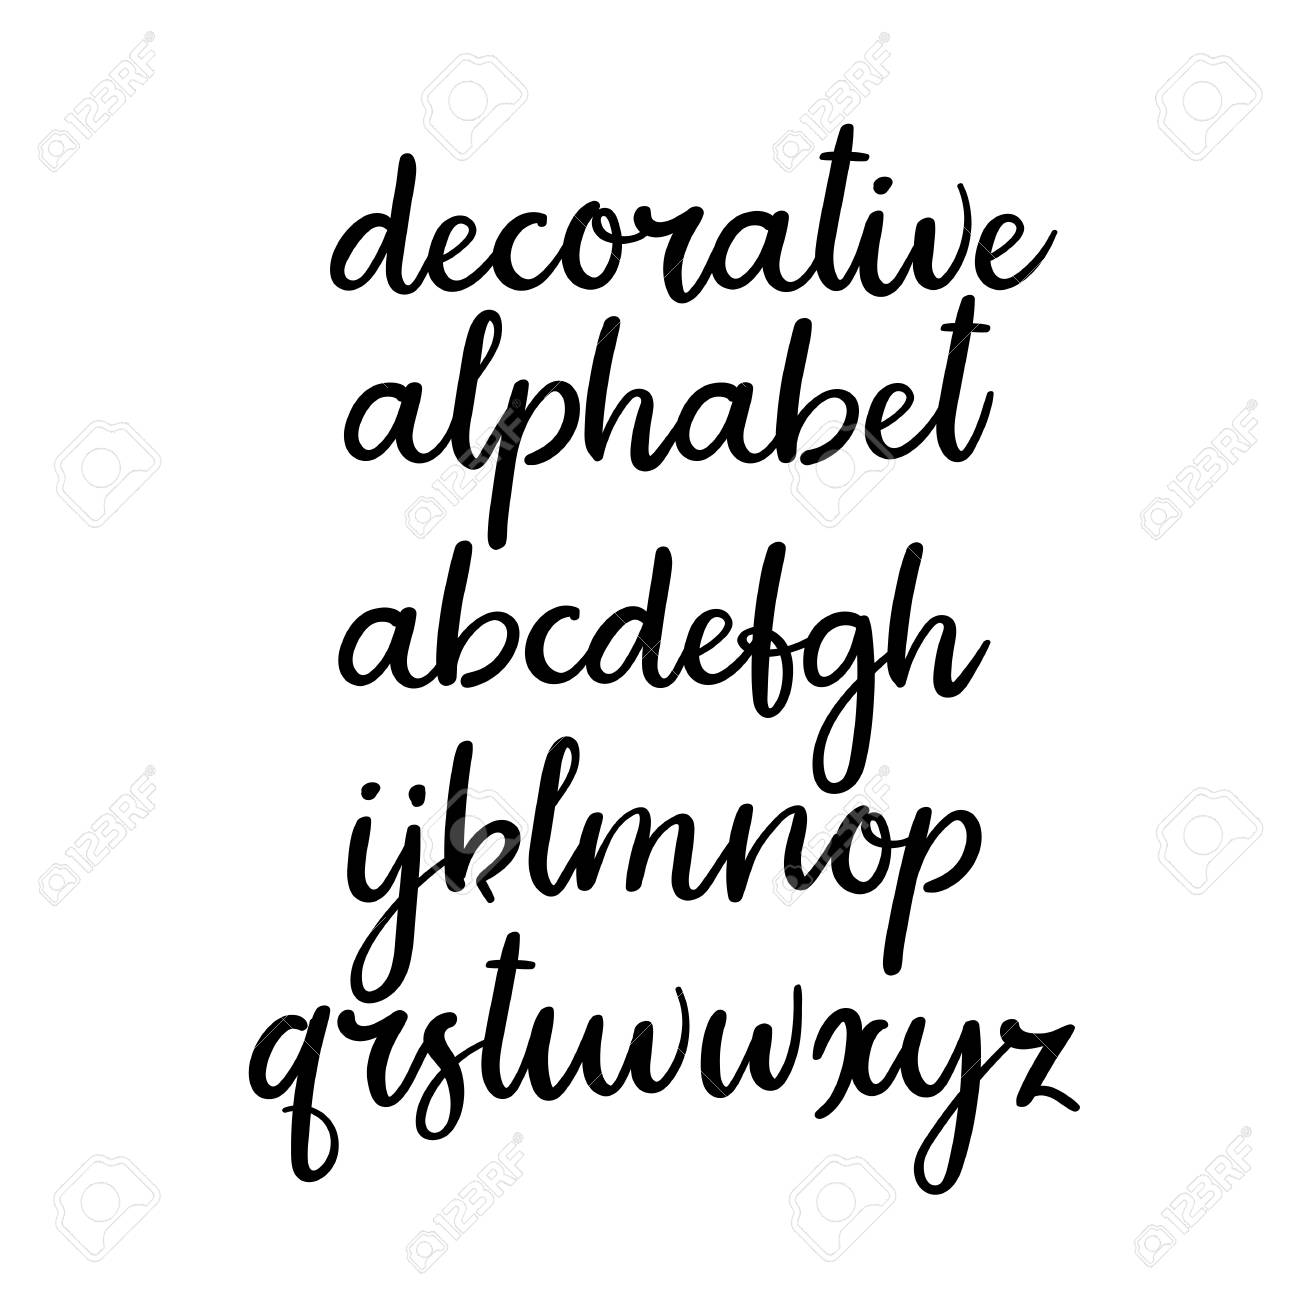 Modern Calligraphy Alphabet Handwritten Lowercase Letters Hand Lettering Font For Your Design Wedding